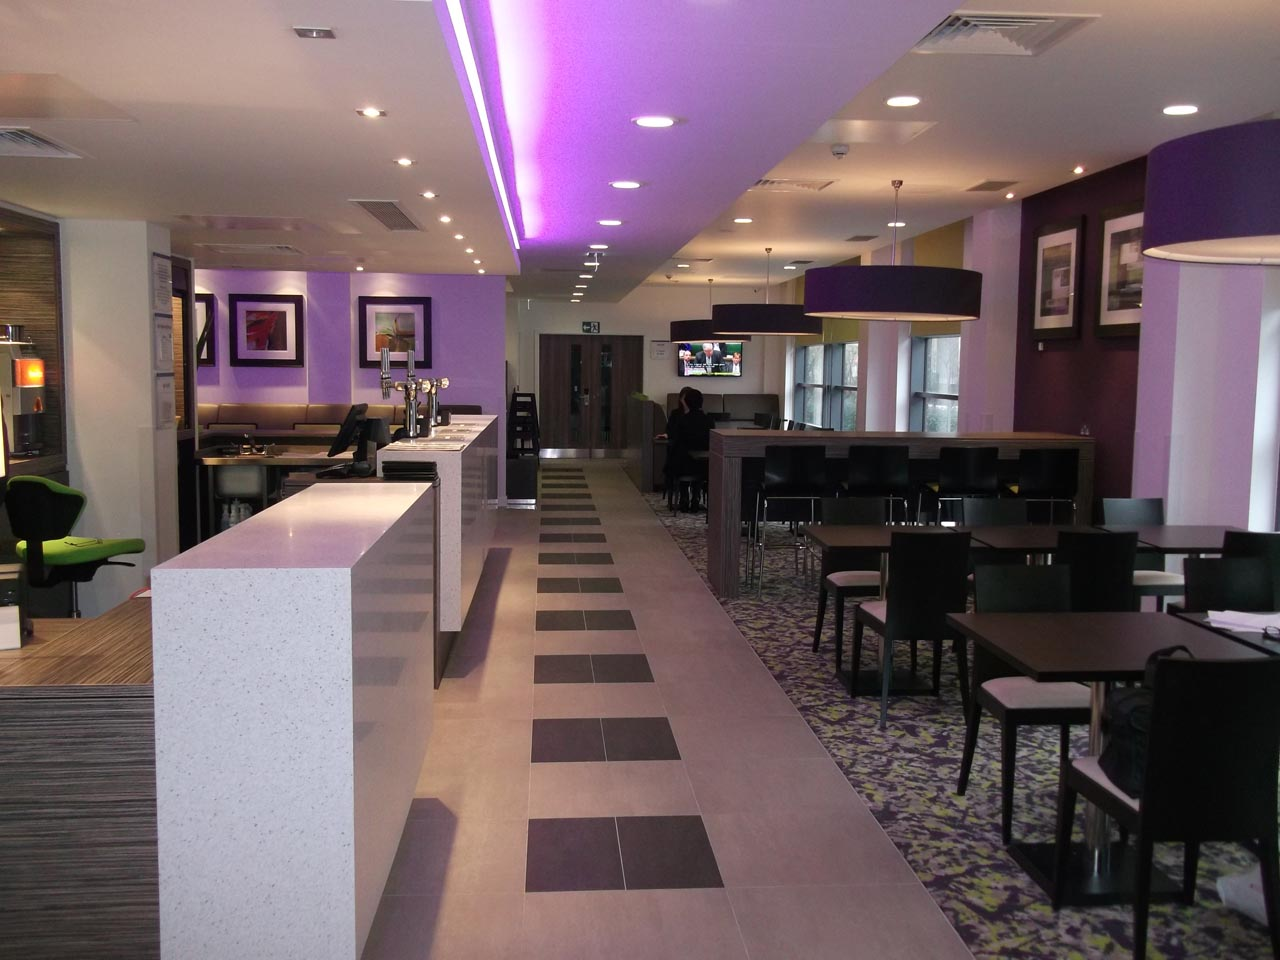 Park Inn Harlow Holiday Inn Express Crown Gate Harlow Pure Structures